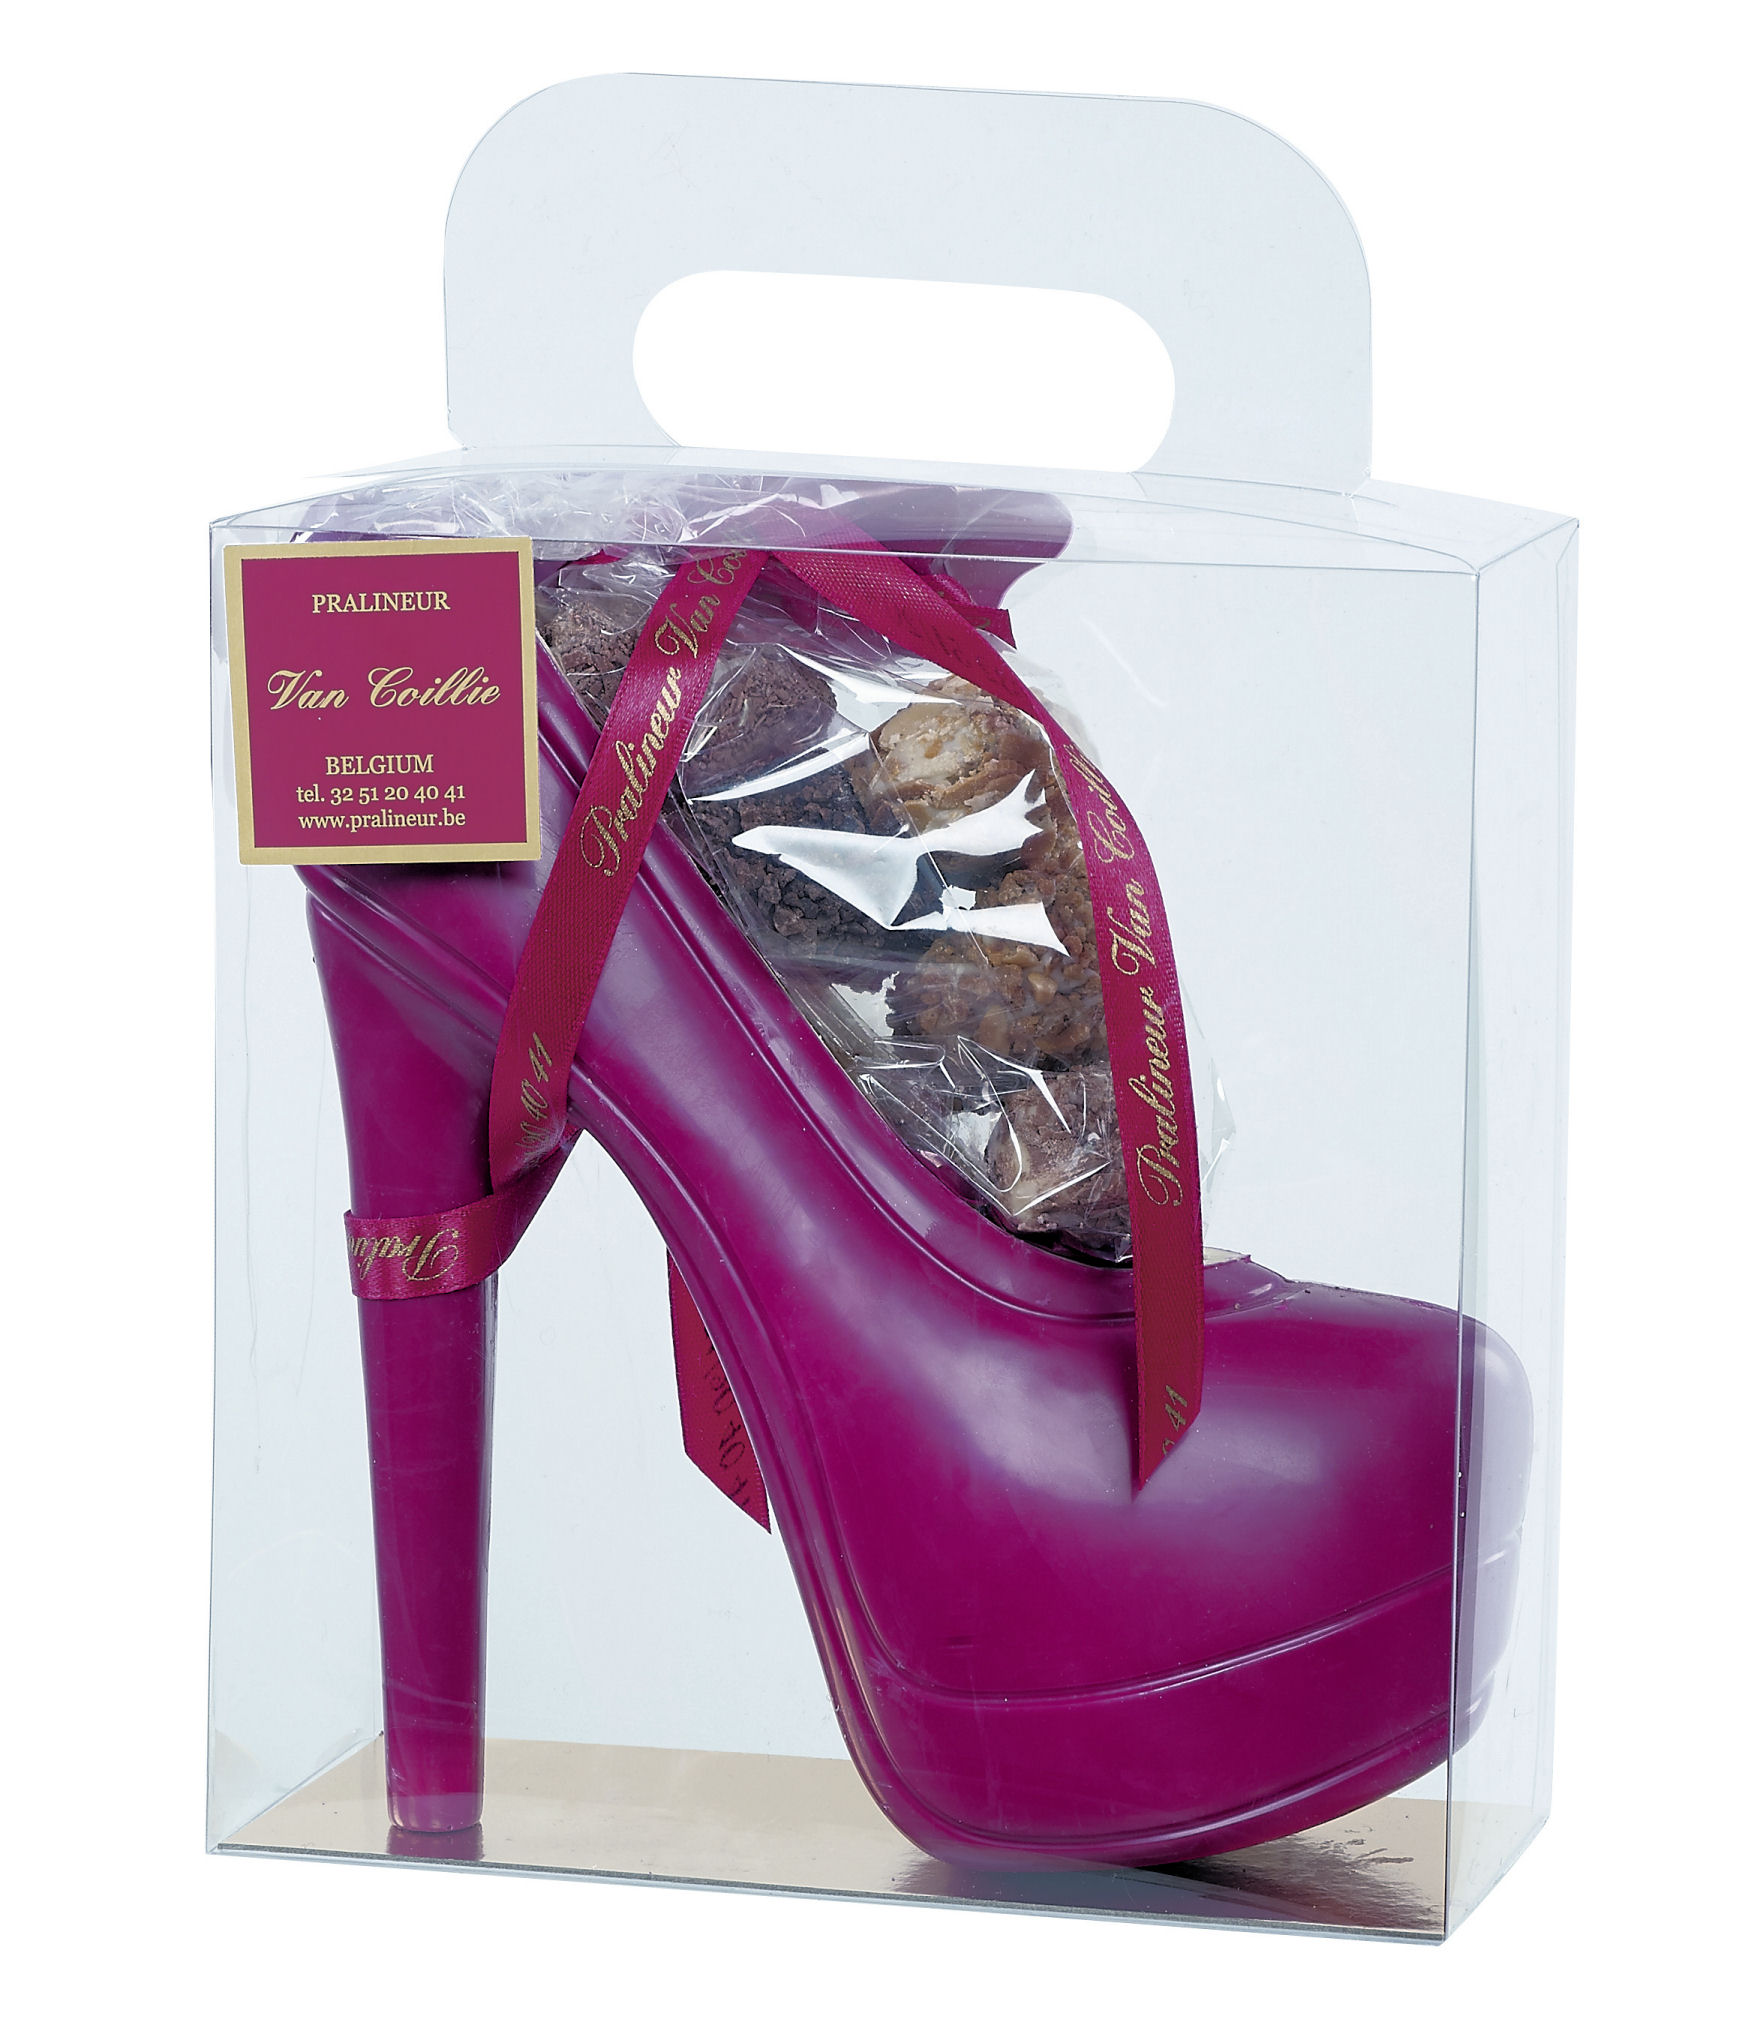 Van Coillie Chocolate Shoe